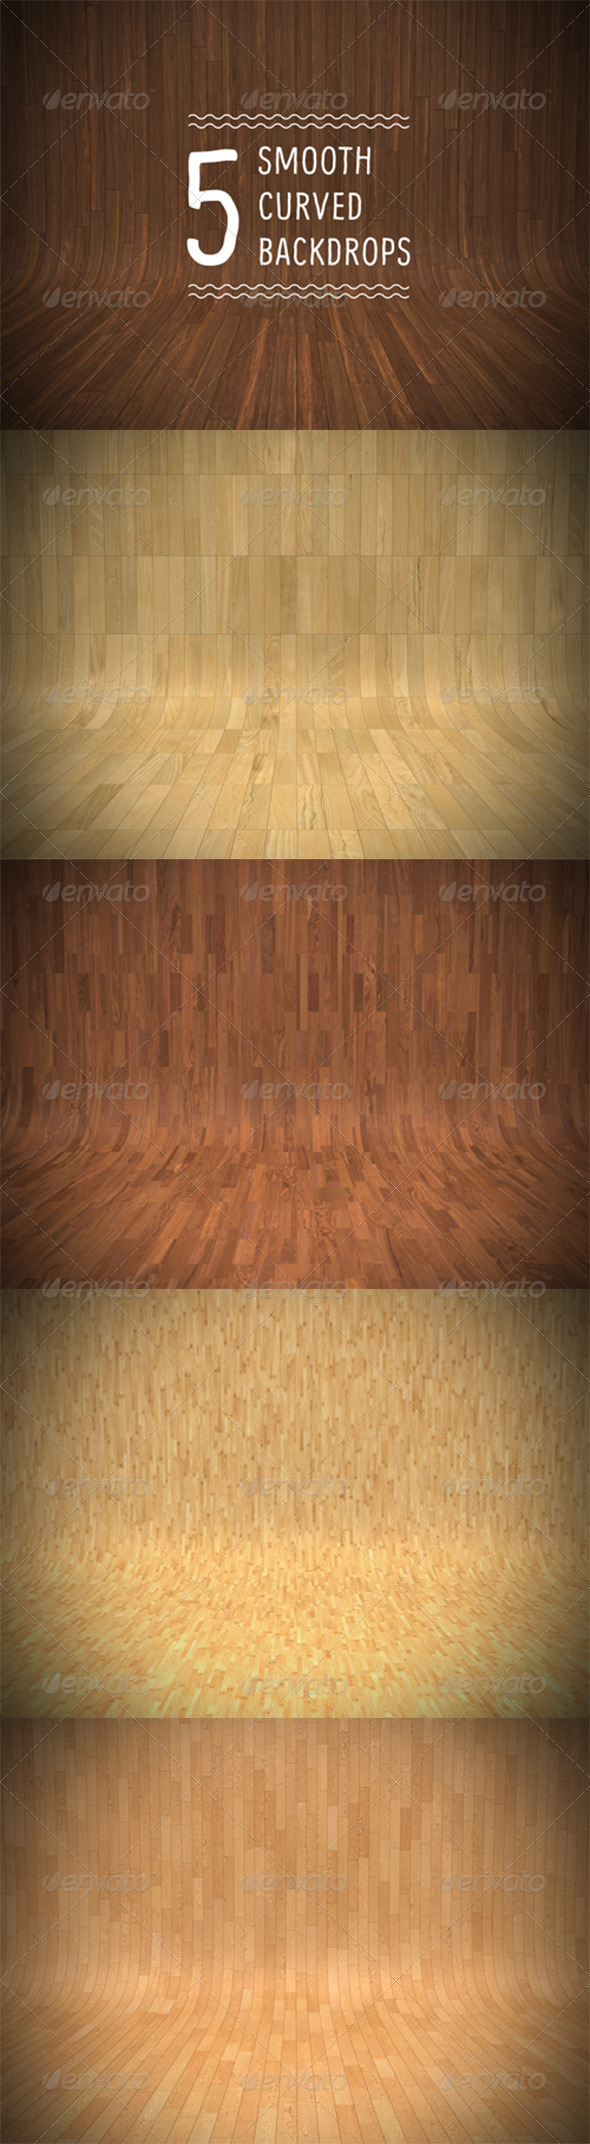 GraphicRiver Smooth Curved Wooden Backdrops 7021025